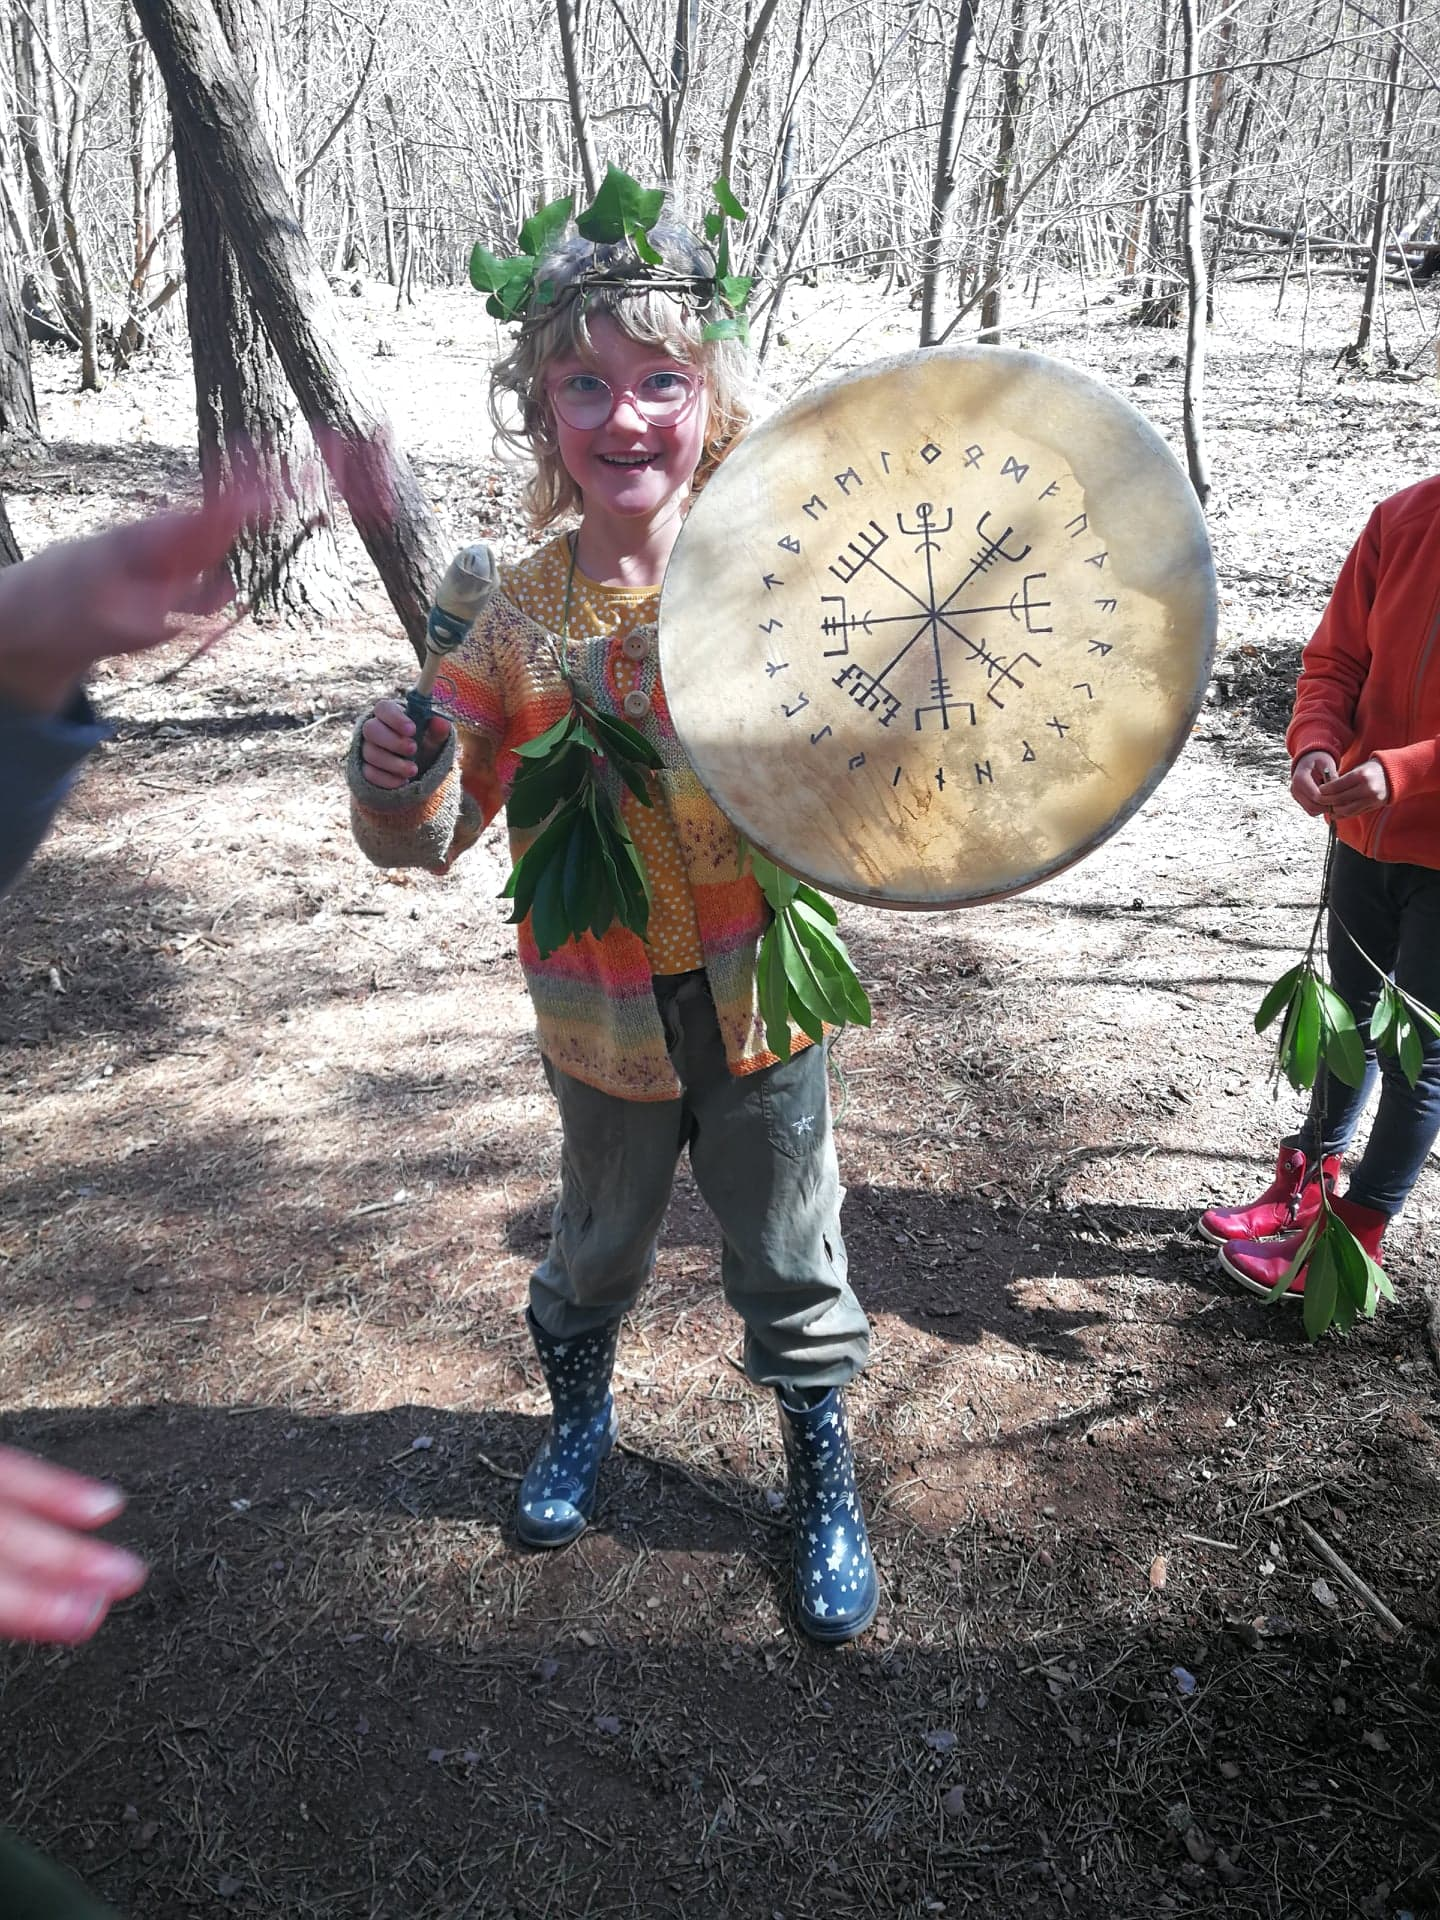 SAMHAIN WOODLAND DAY event mentored by Luke Funnell